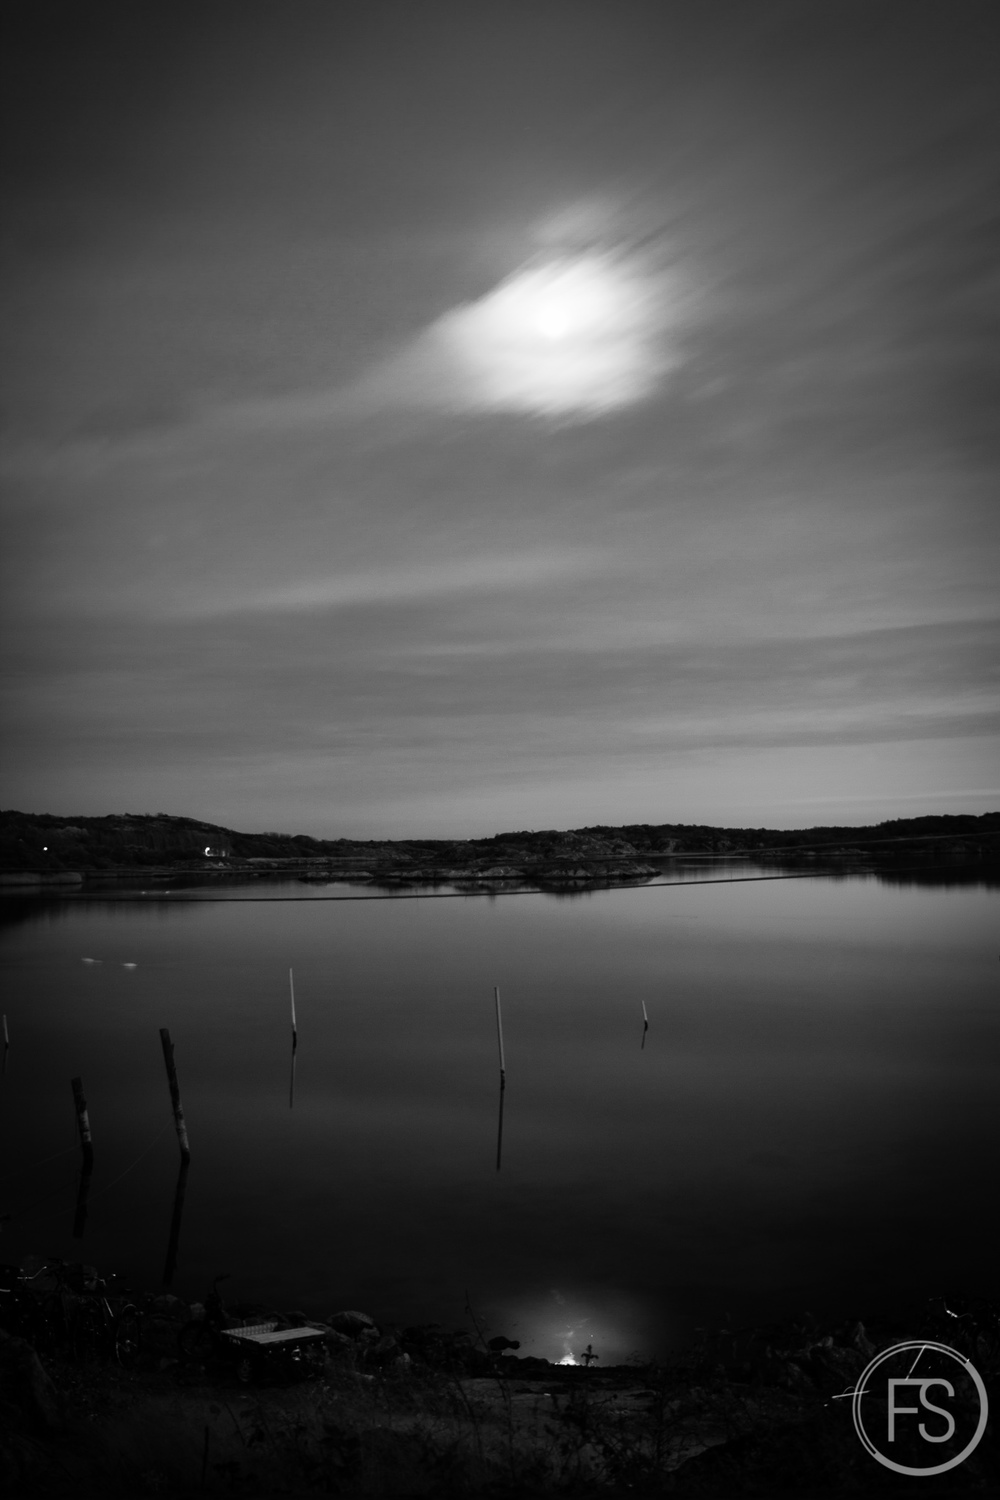 Long exposures can produce weird results, especially in black and white!